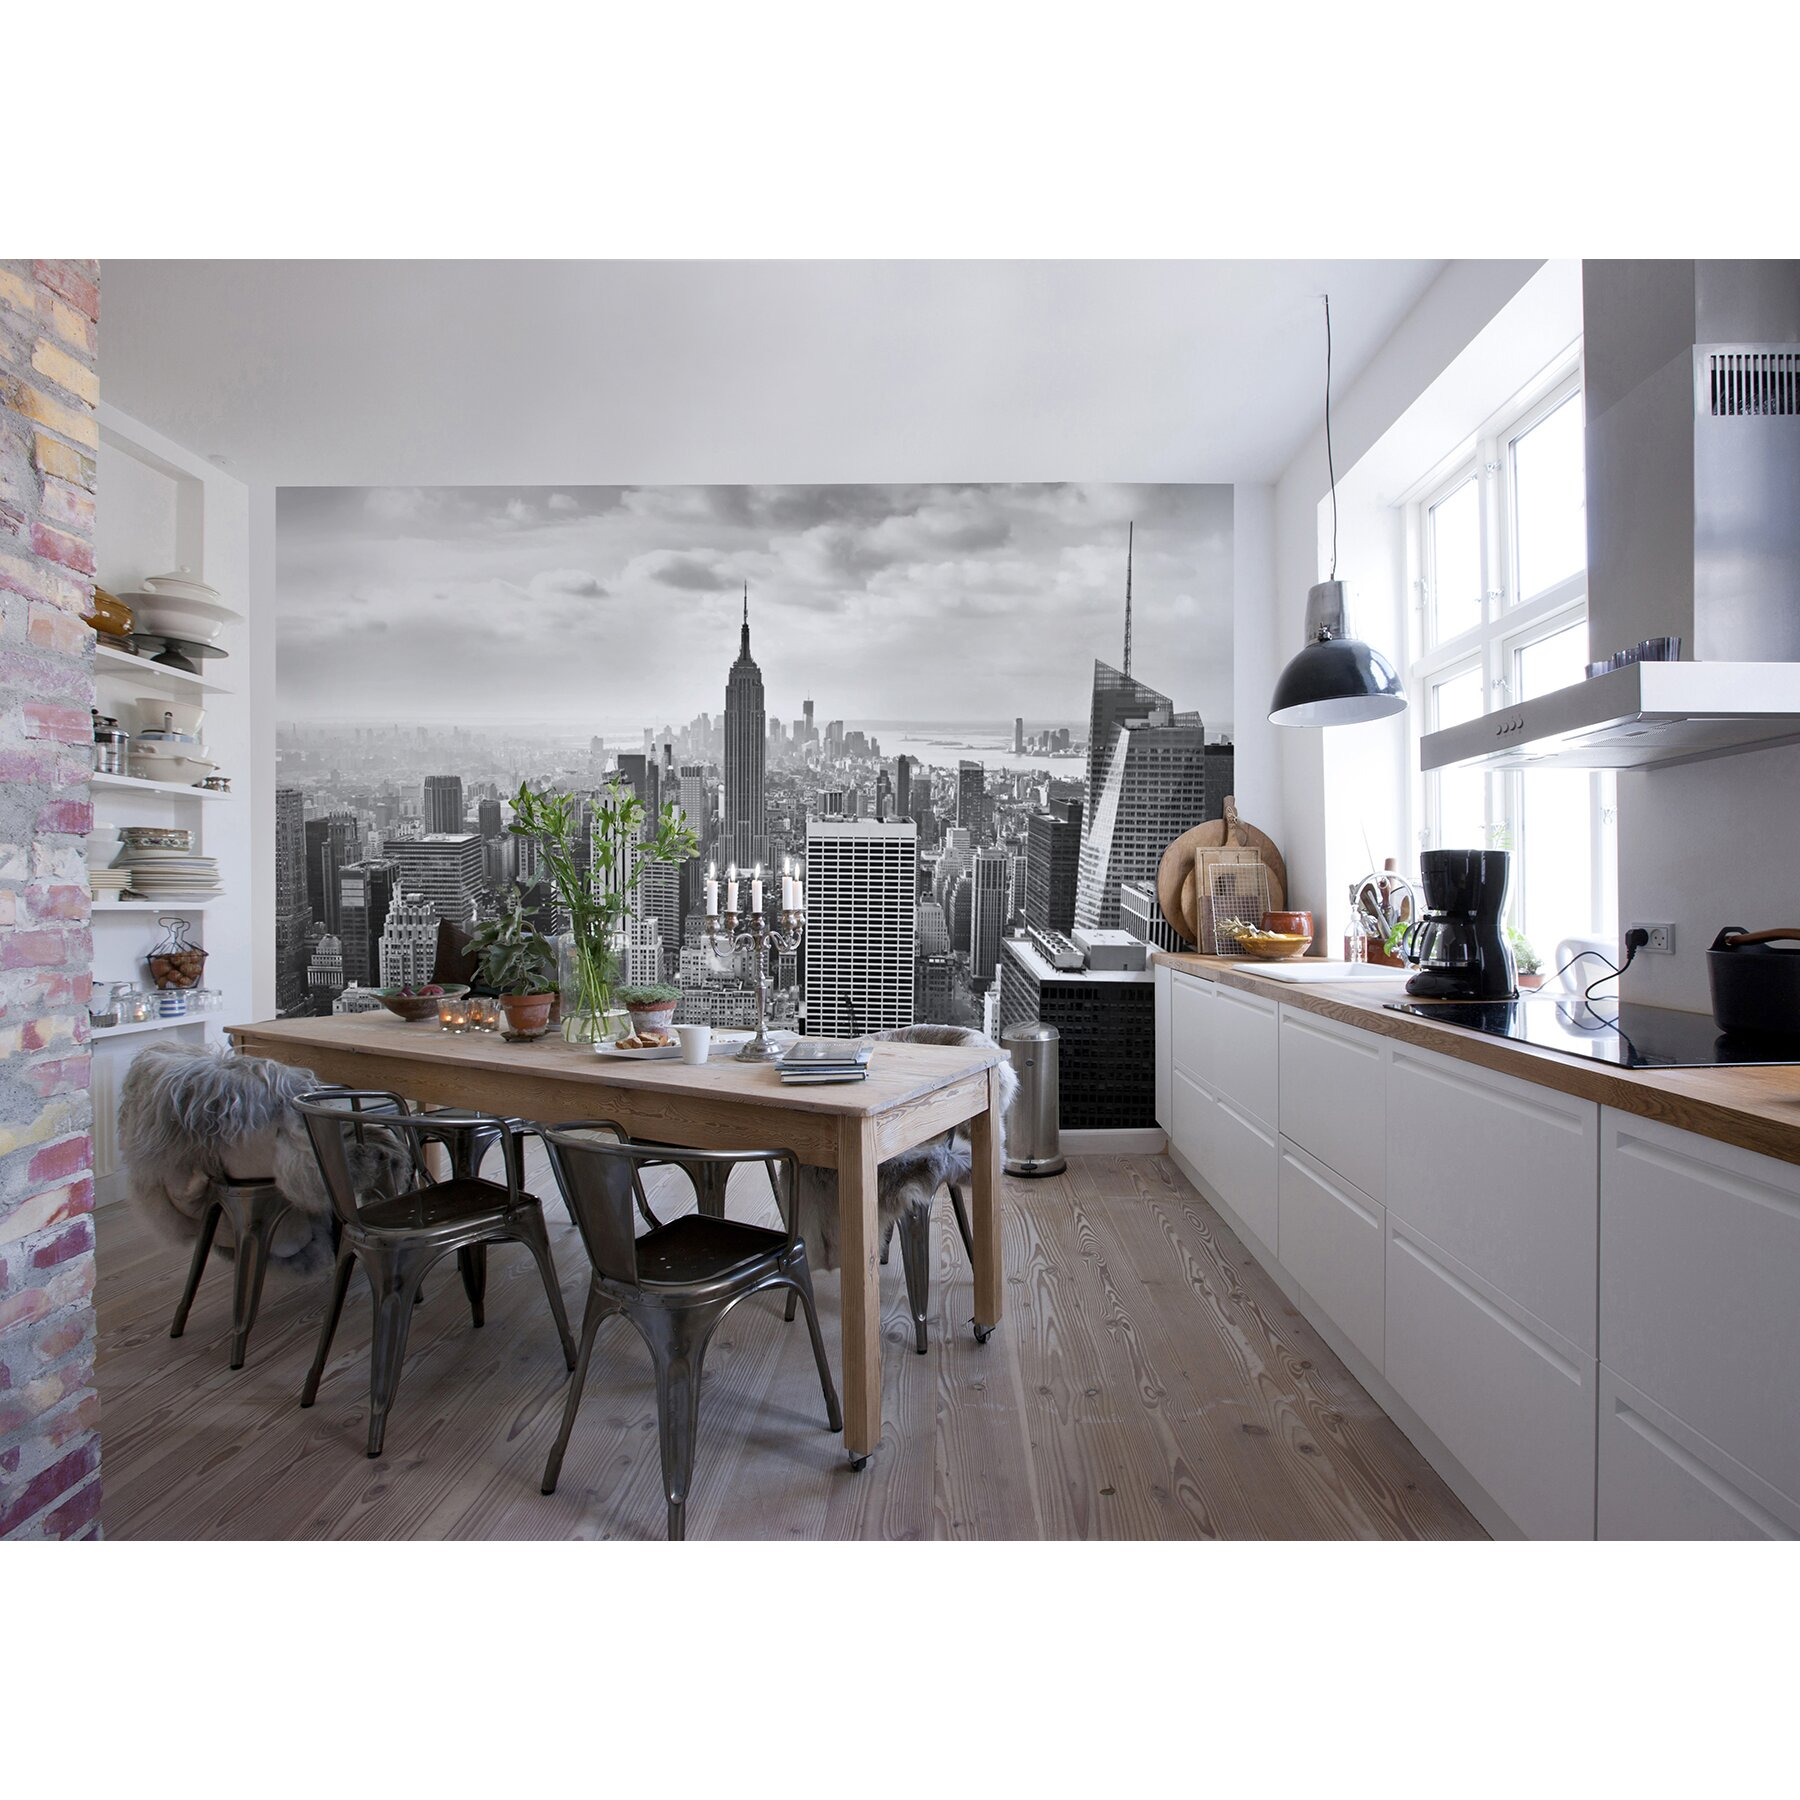 New york wall murals wall murals ideas brewster home fashions new york city wall mural reviews amipublicfo Gallery